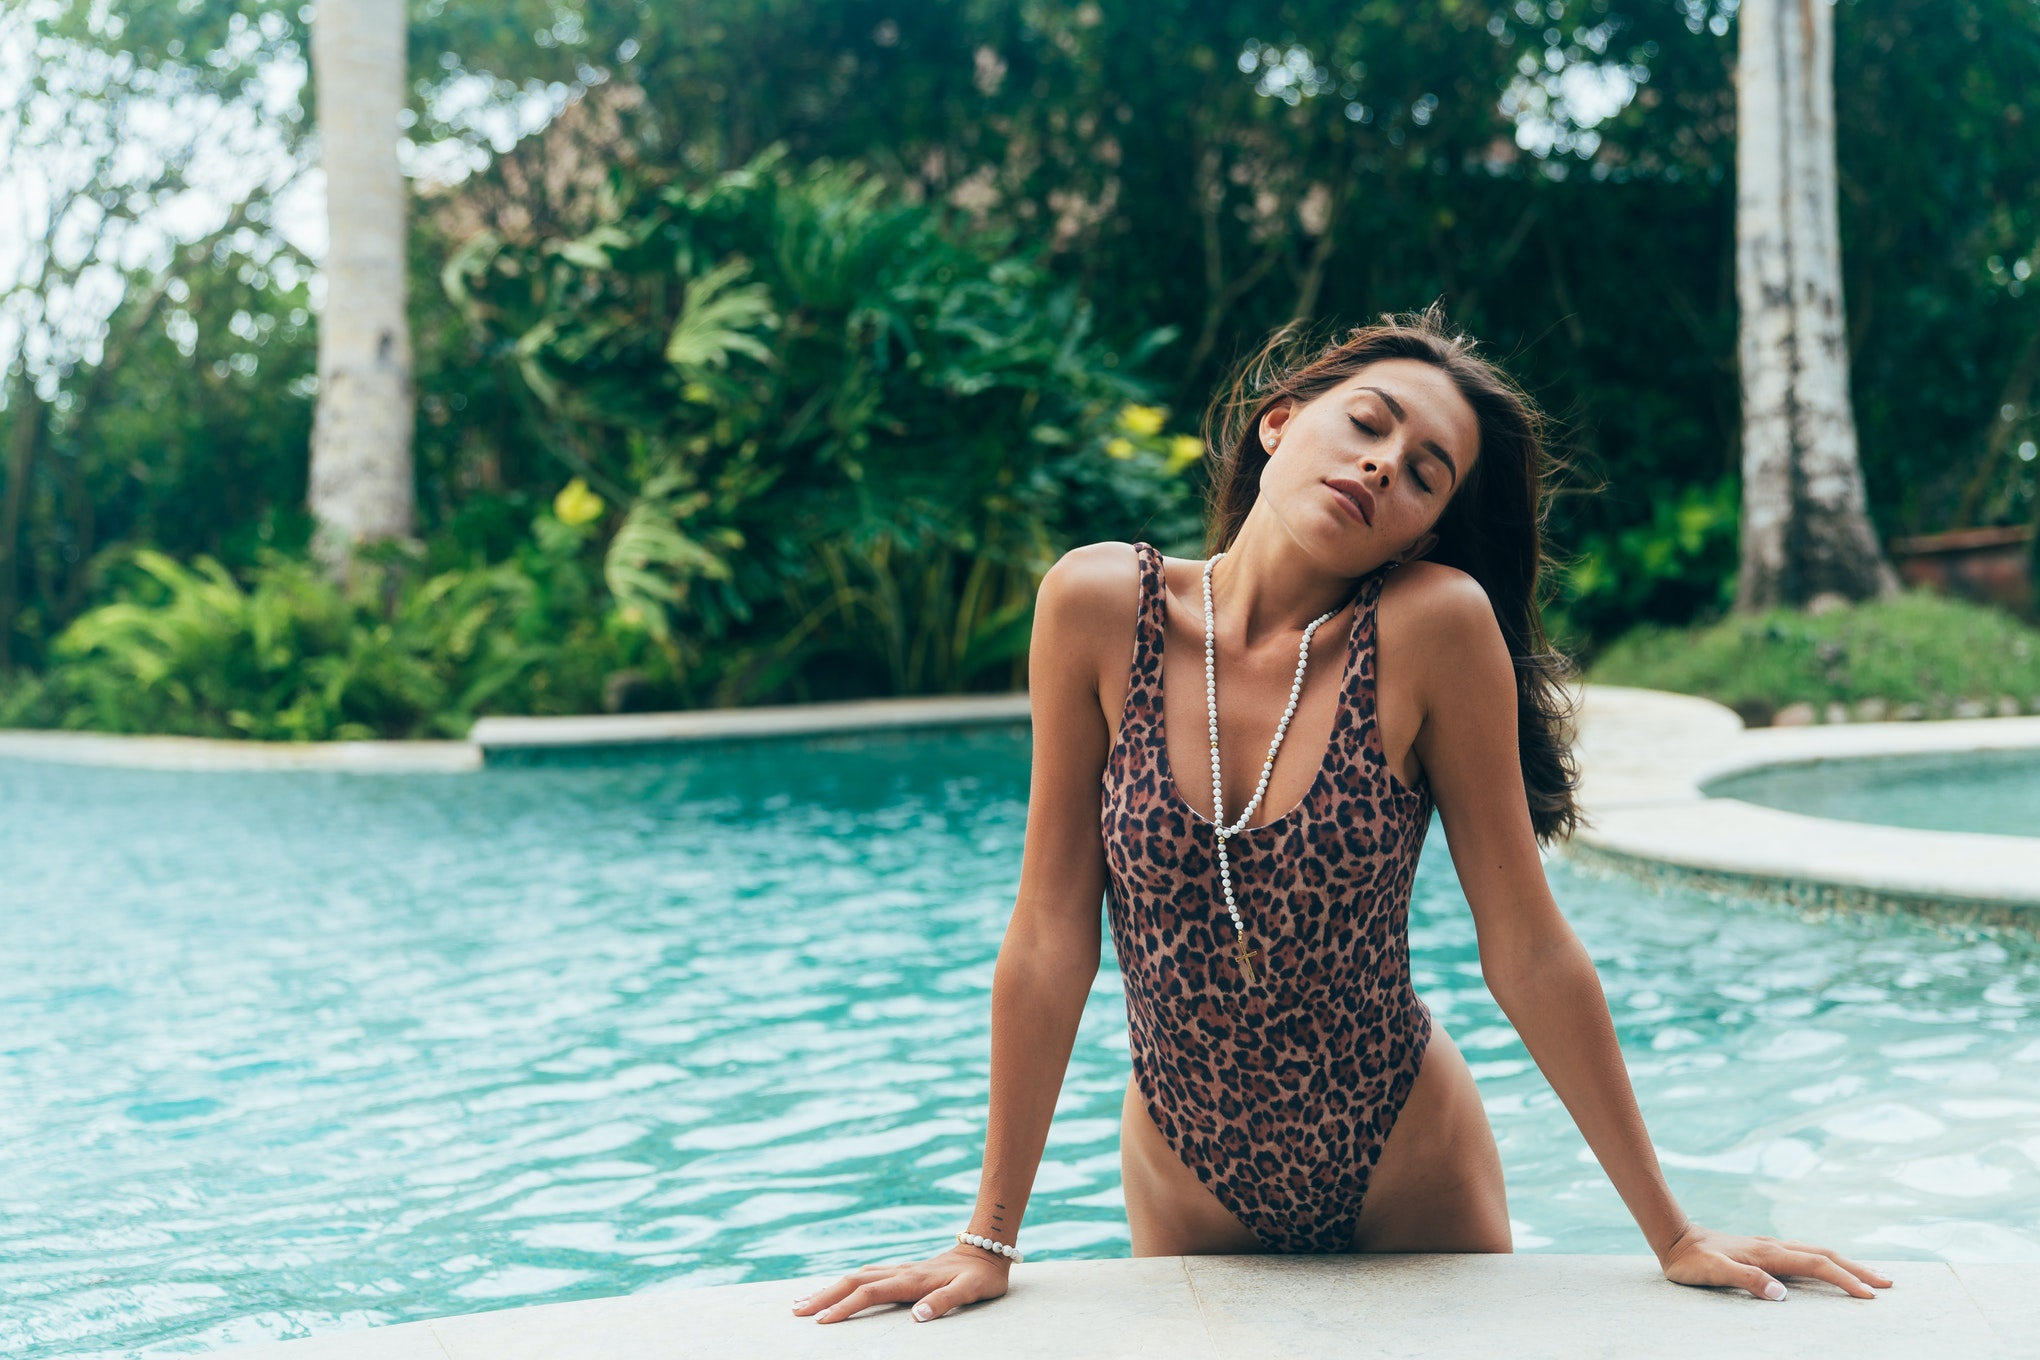 Fat Transfer Breast Augmentation: How to Increase Breast Size Without Implants